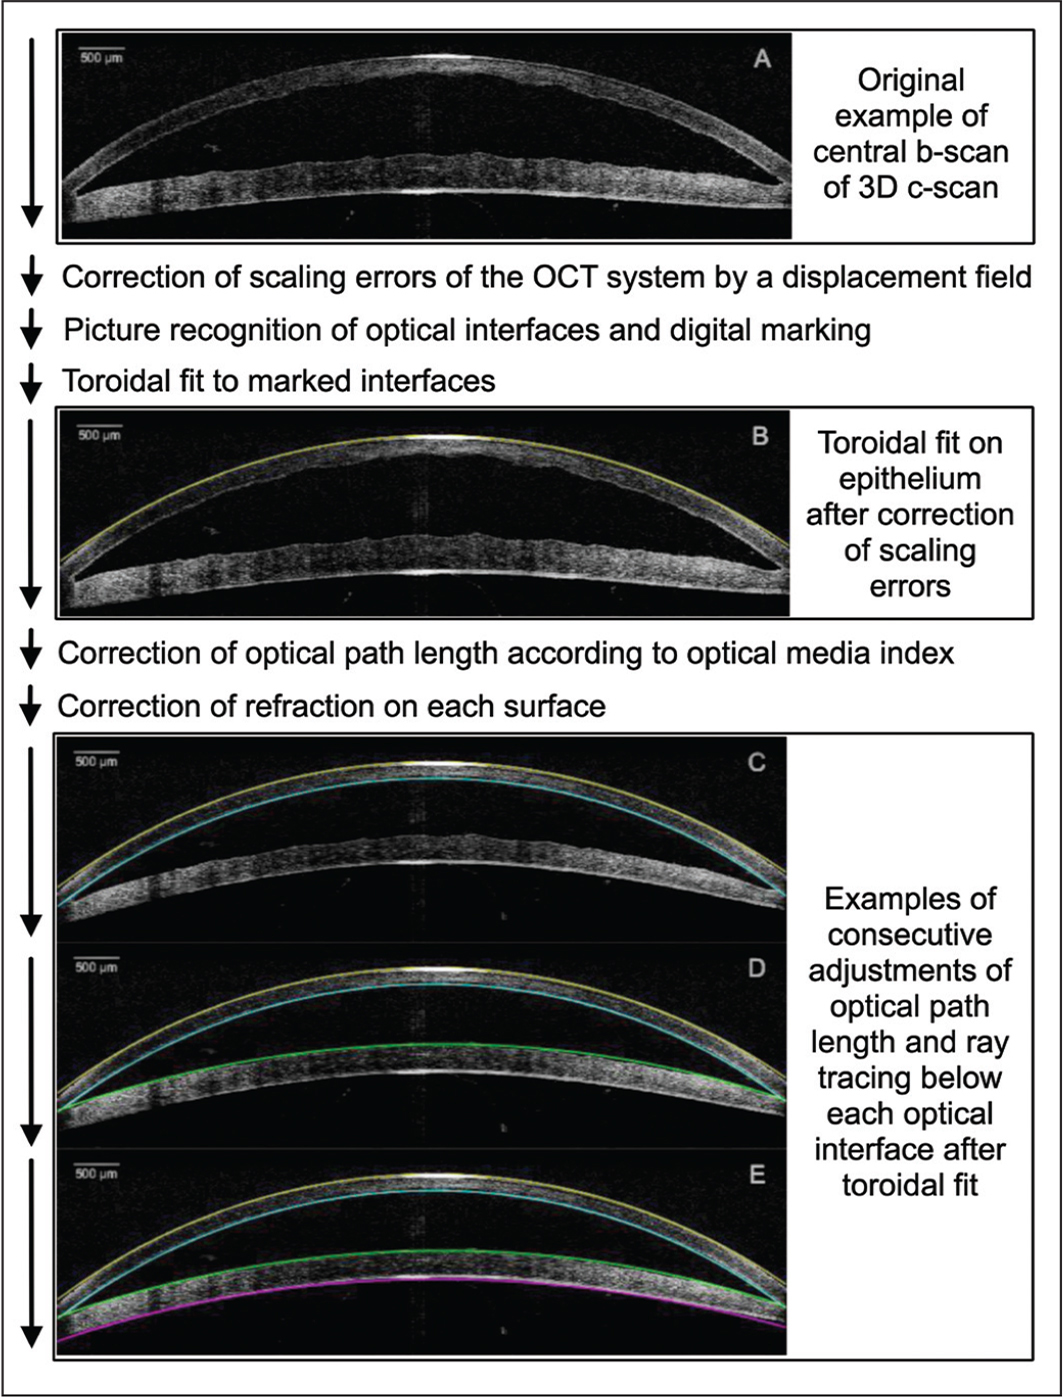 Flowchart diagram showing the consecutive calculations using our Matlab algorithm (The Mathworks) to detect the geometric profile of the cornea to determine the corneal refraction after filler injection. OCT = optical coherence tomography